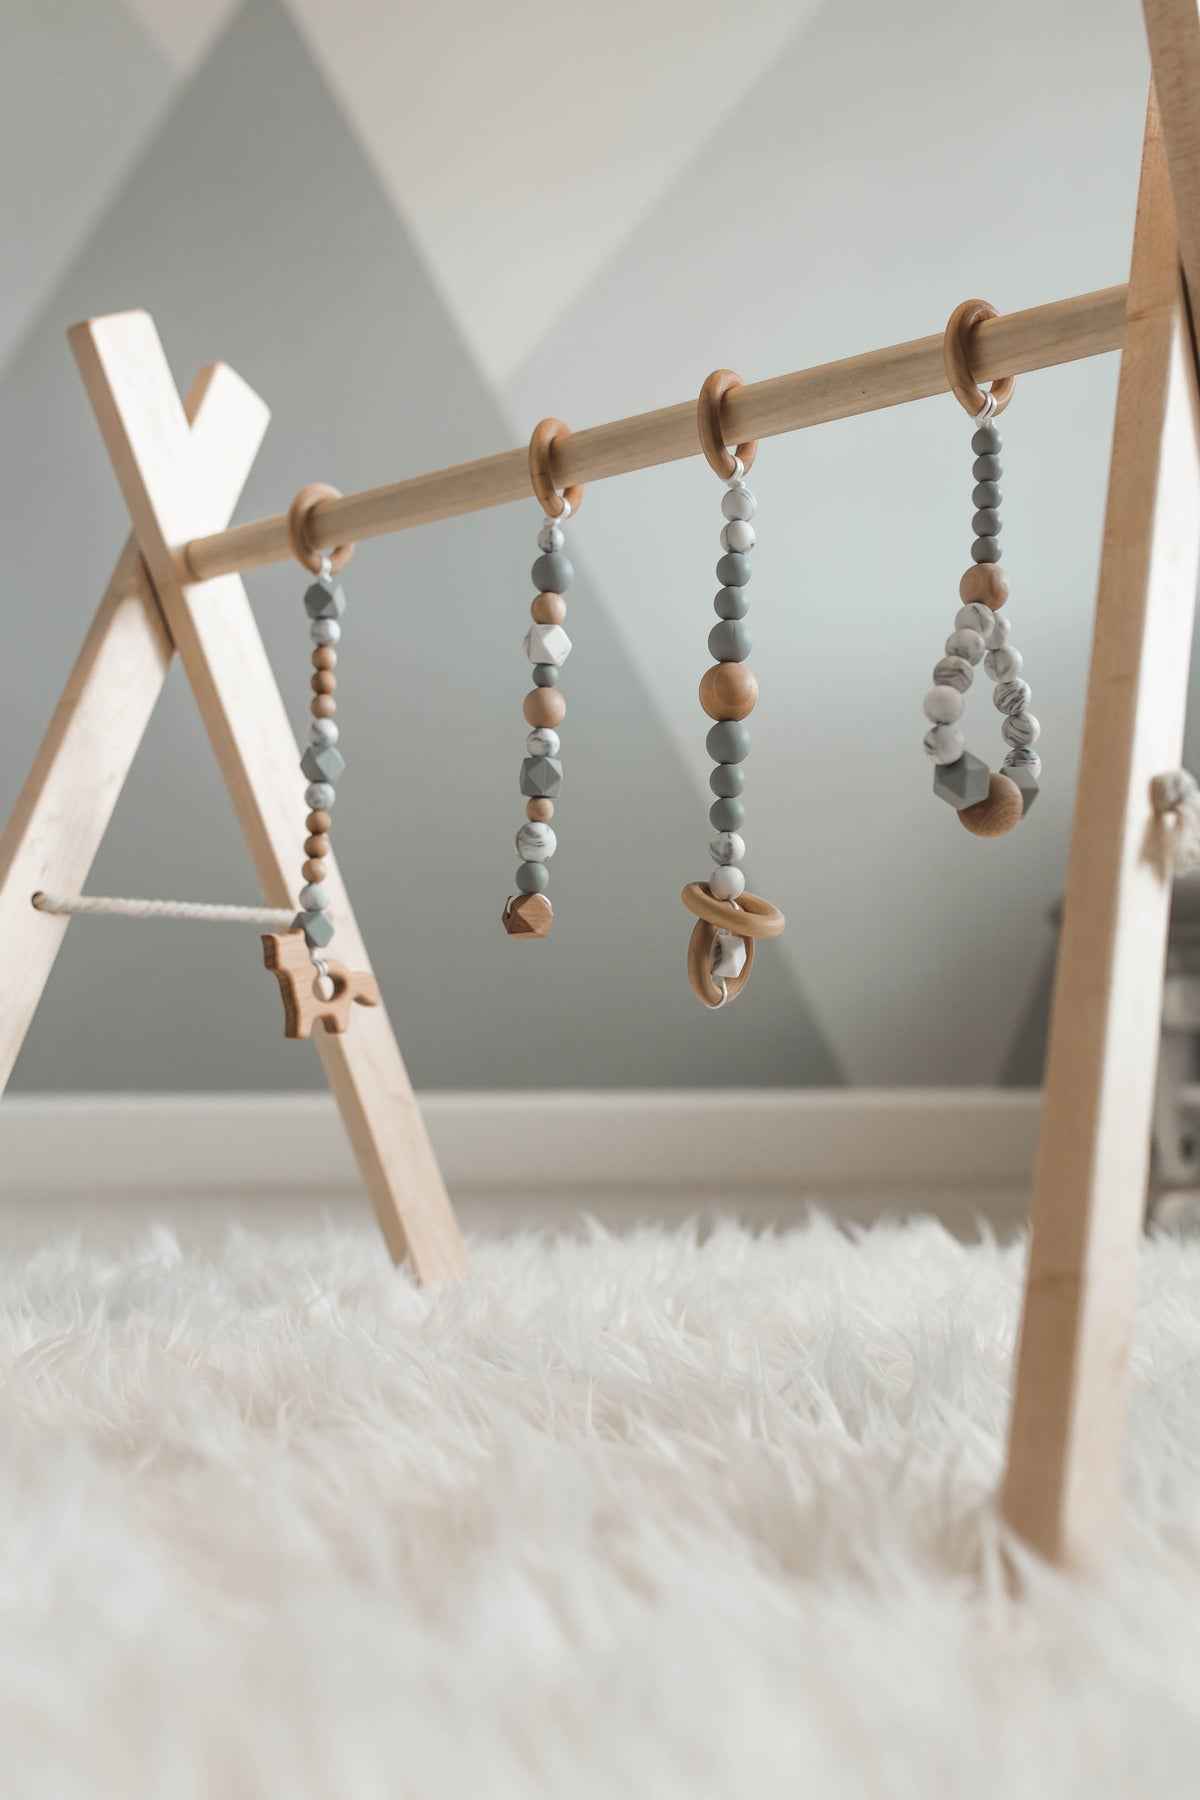 Custom Teething Jungle Gym + Accessories